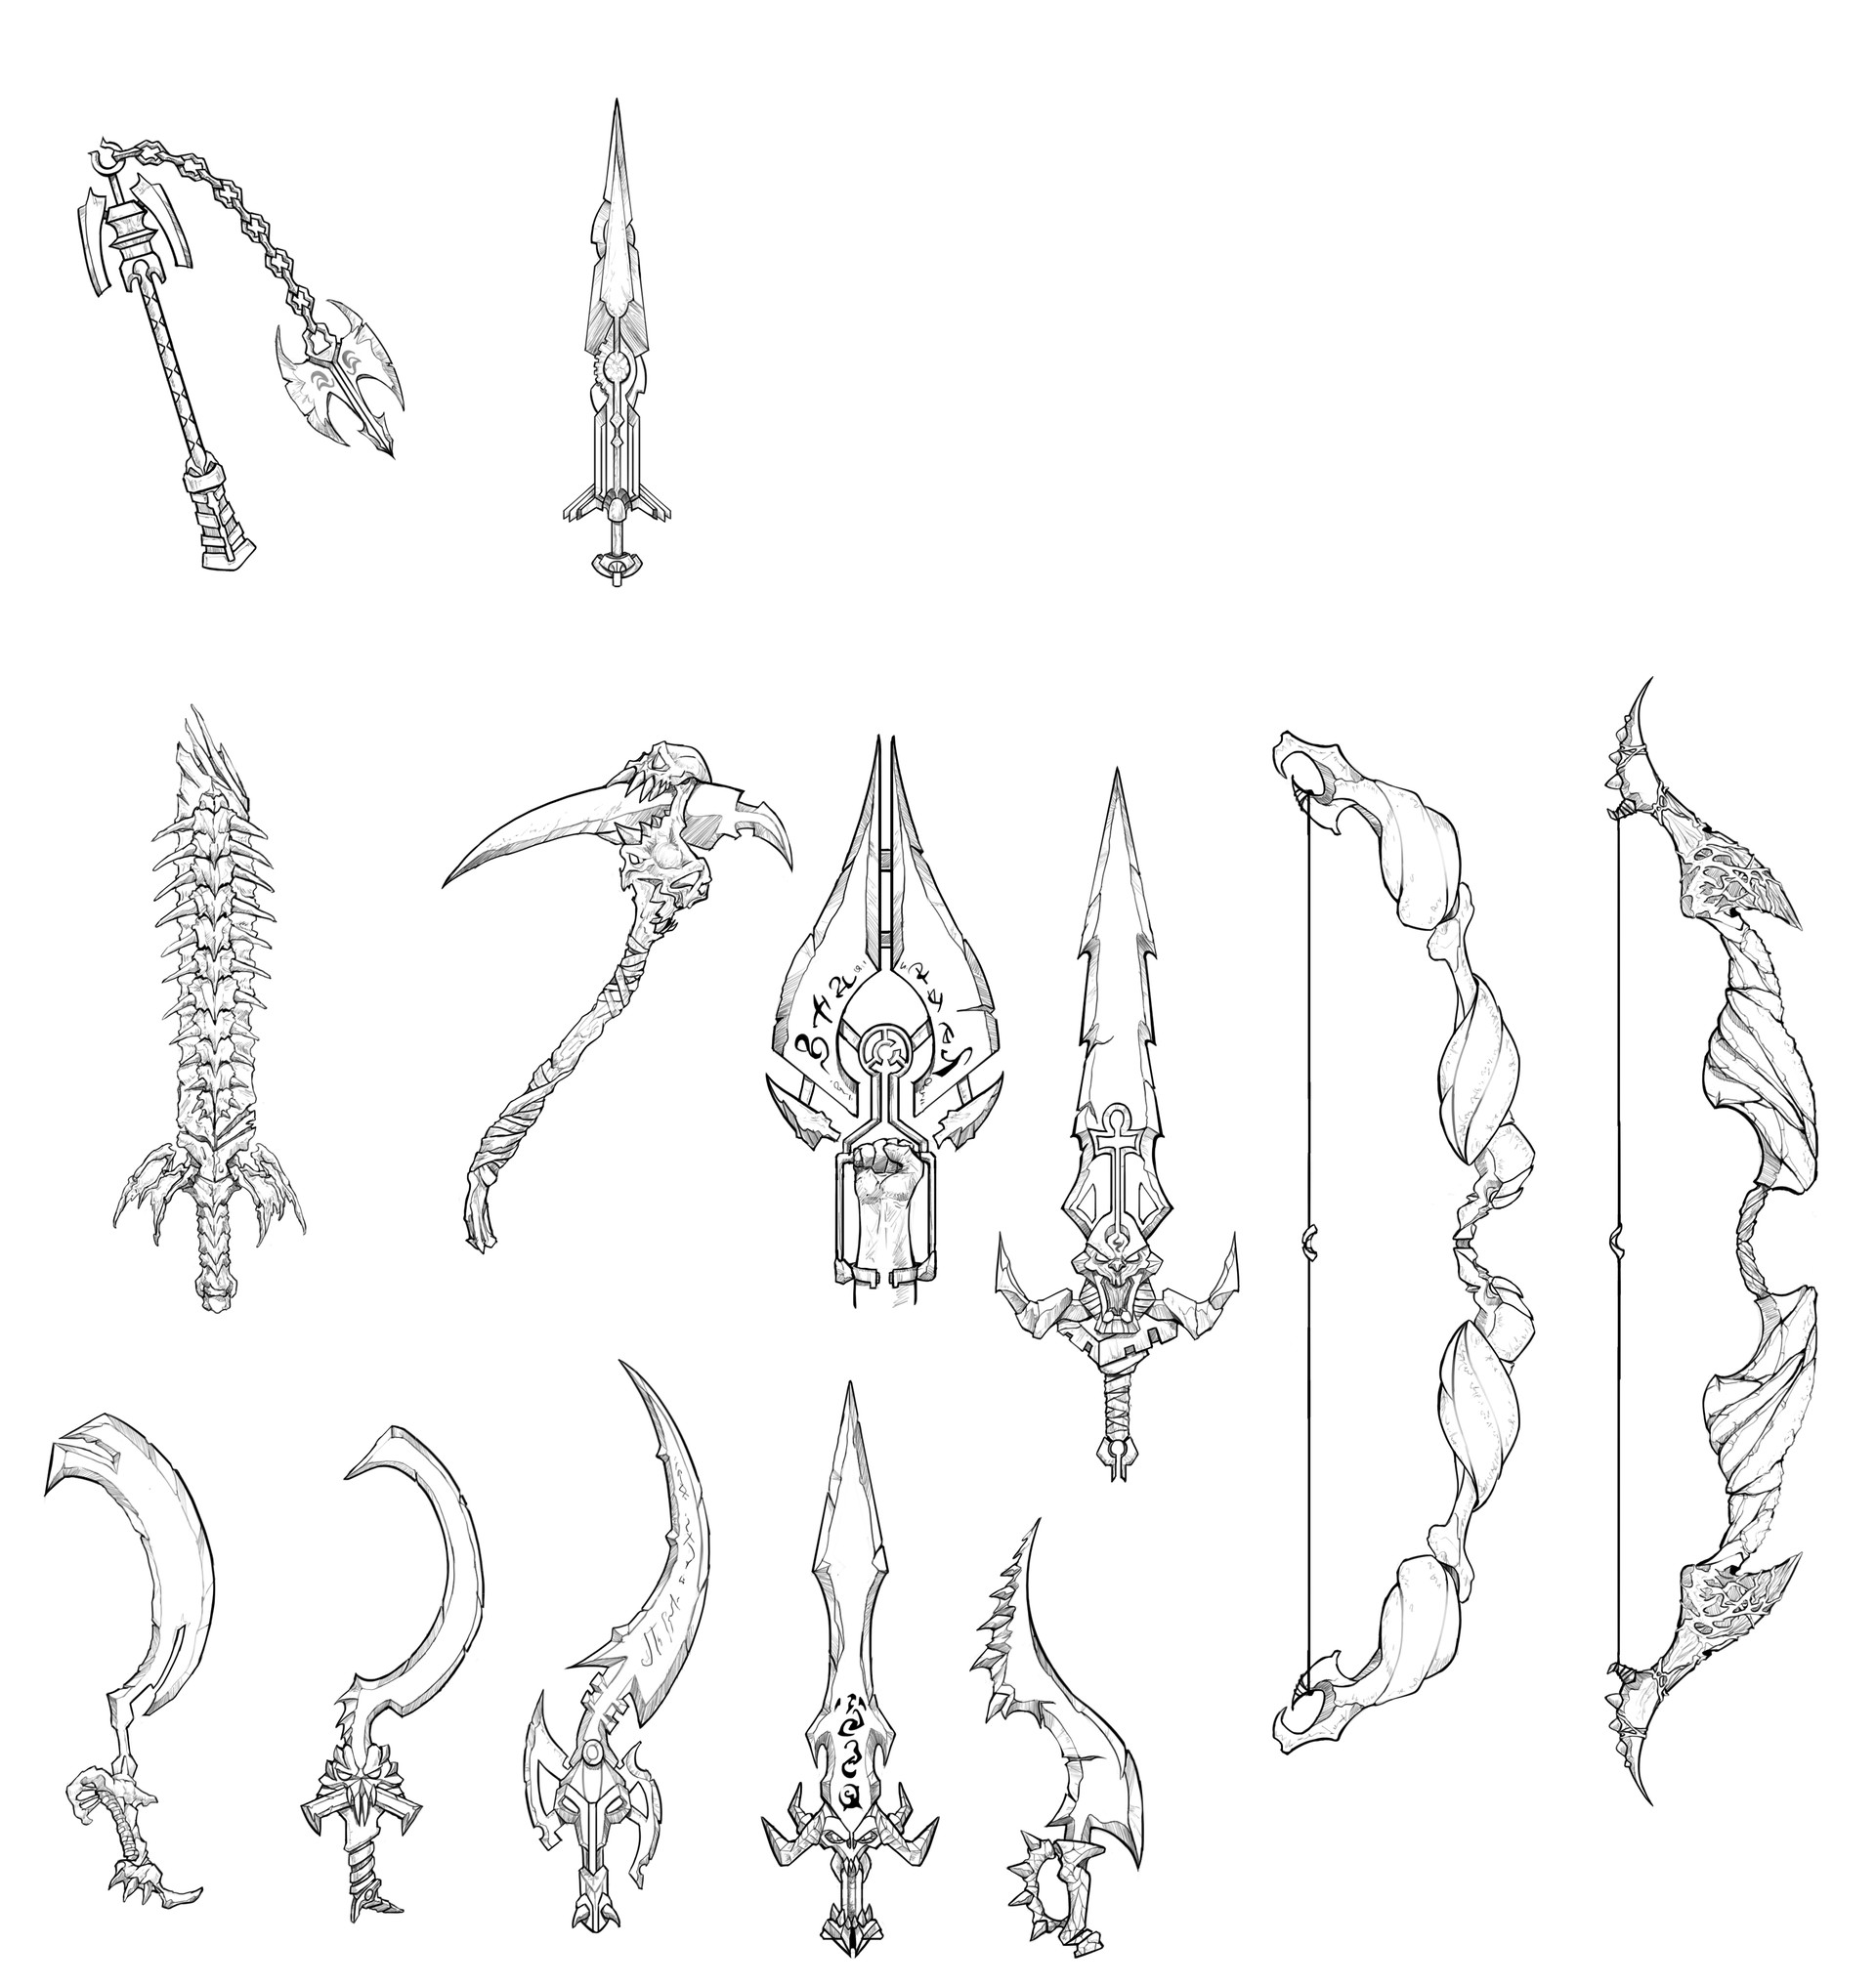 Peter rocque weapons sketch